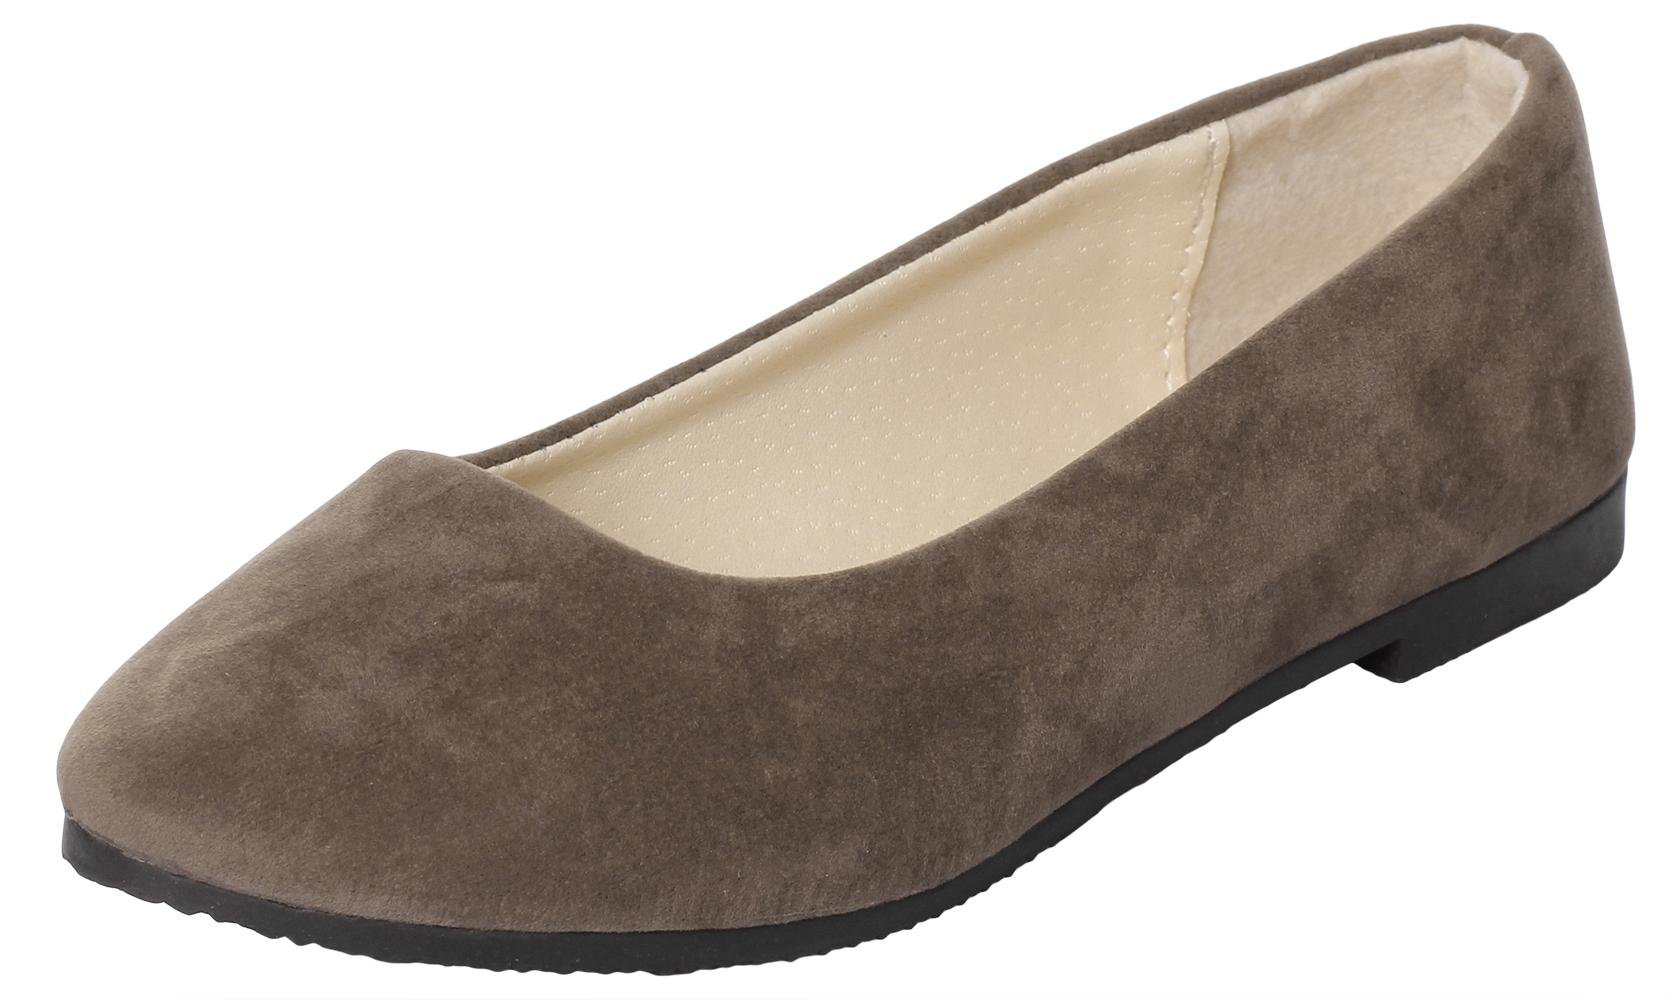 UJoowalk Womens Casual Simple Comfort Solid Color Pointed Toe Suede Leather Ballet Walking Slip on Flat Shoes (6 B(M) US, Matte Brown)